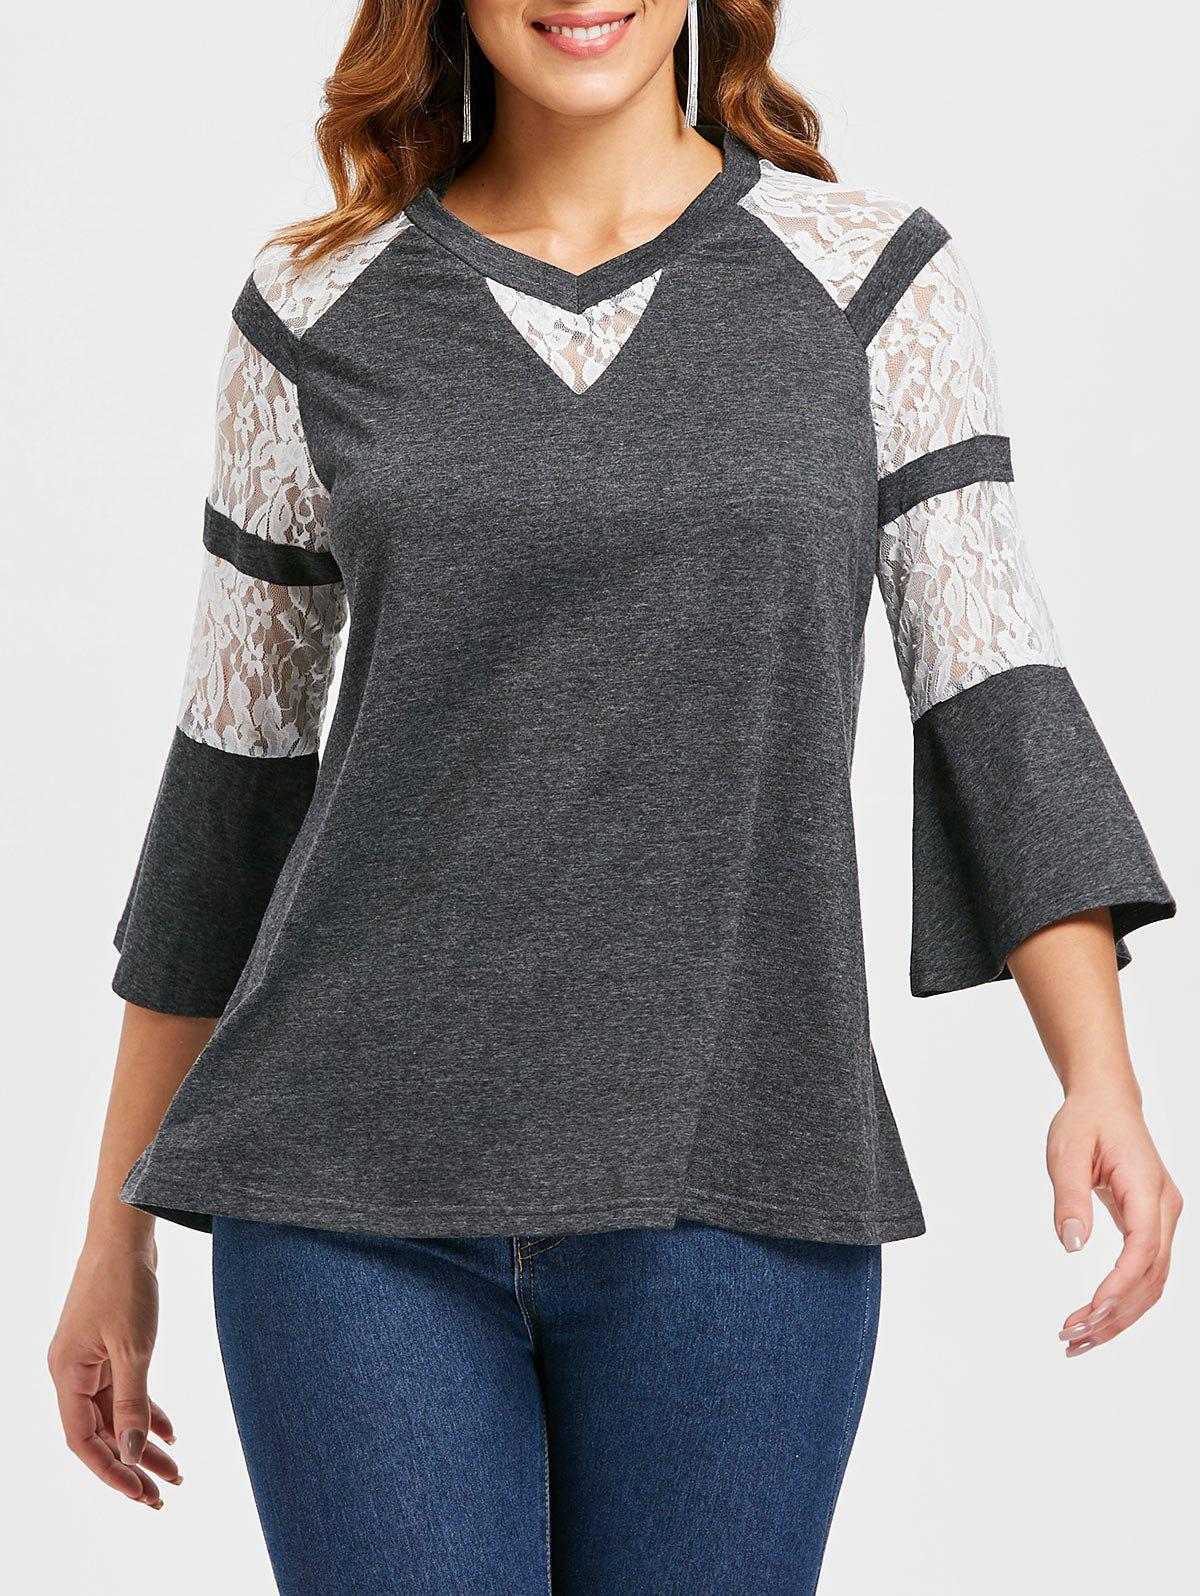 Latest Floral Lace Panel Flare Sleeve T-shirt